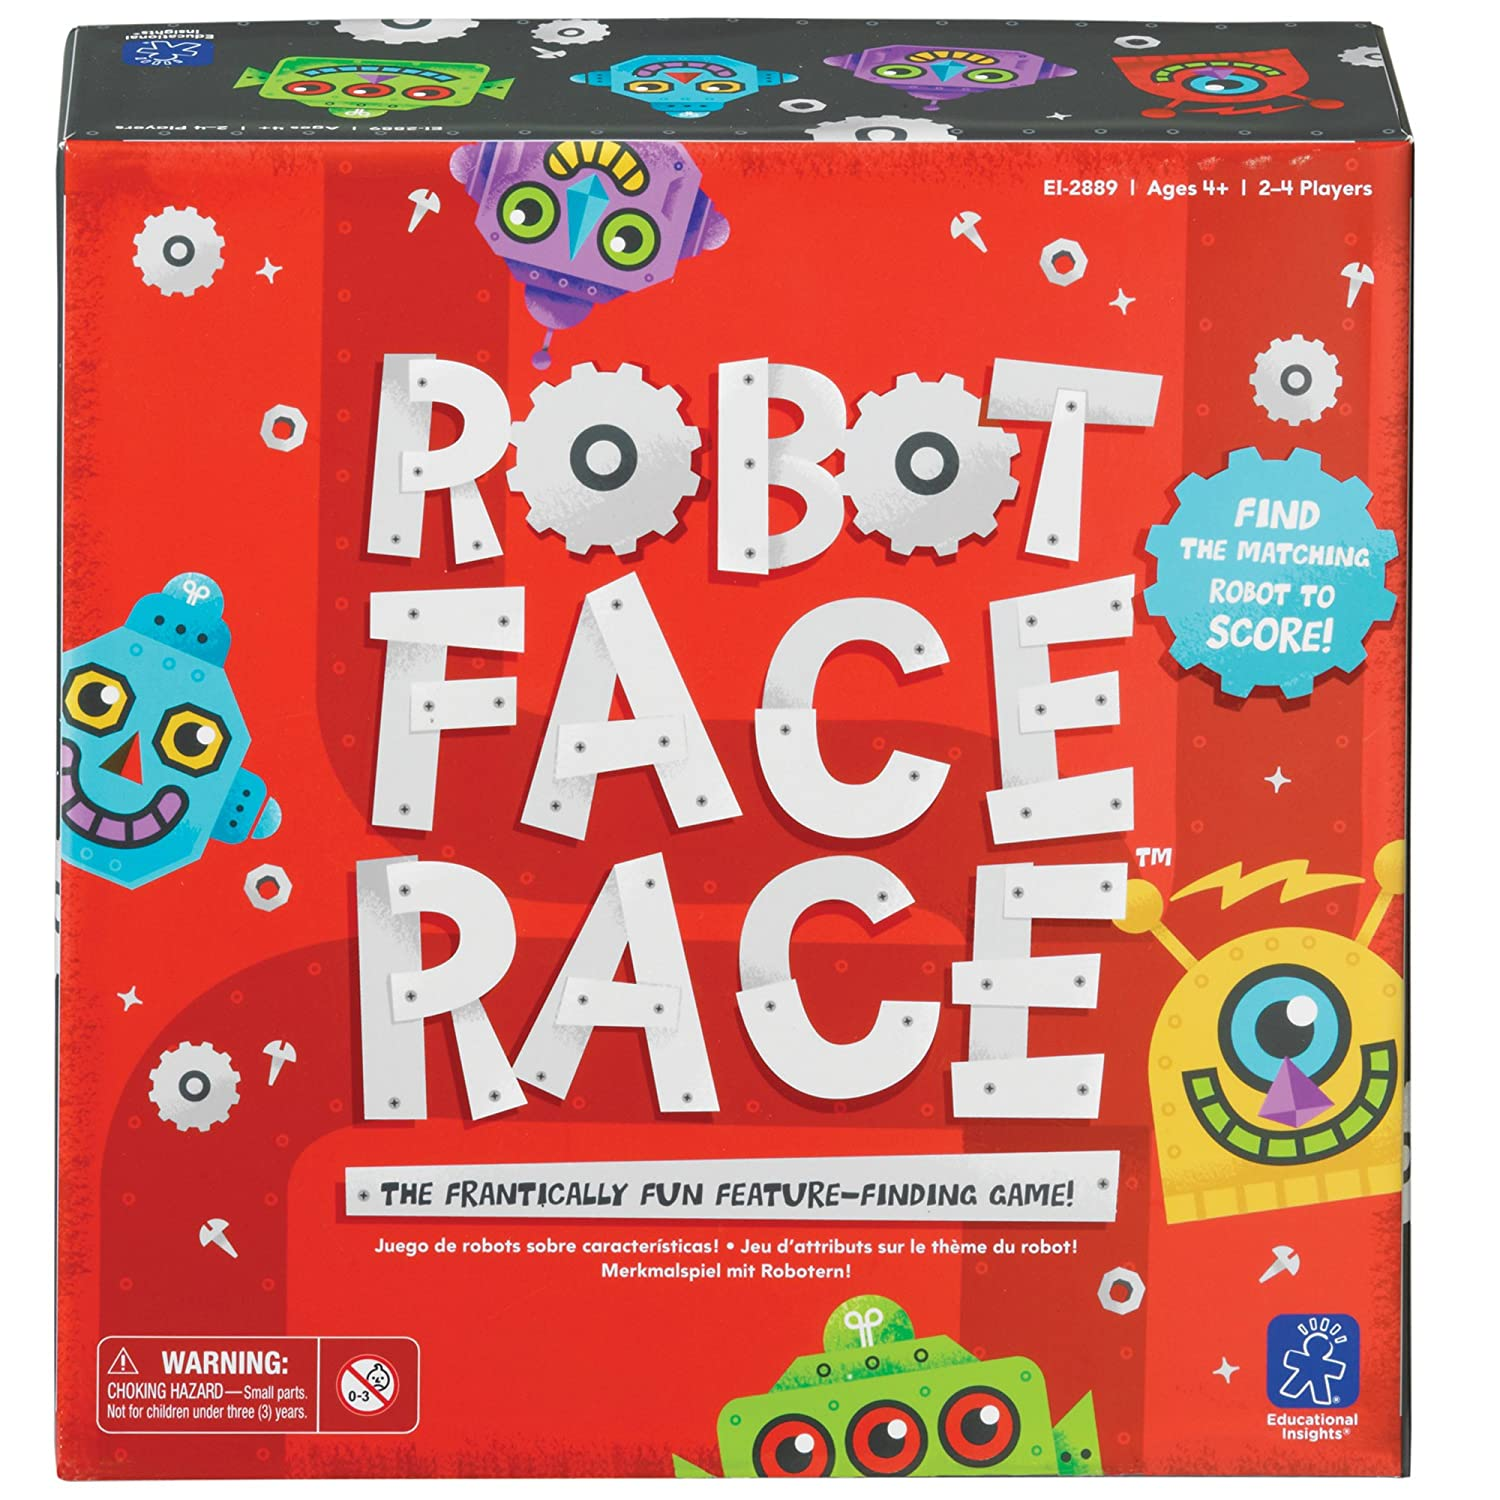 this is an image of a Robot Face Race game set in a red box